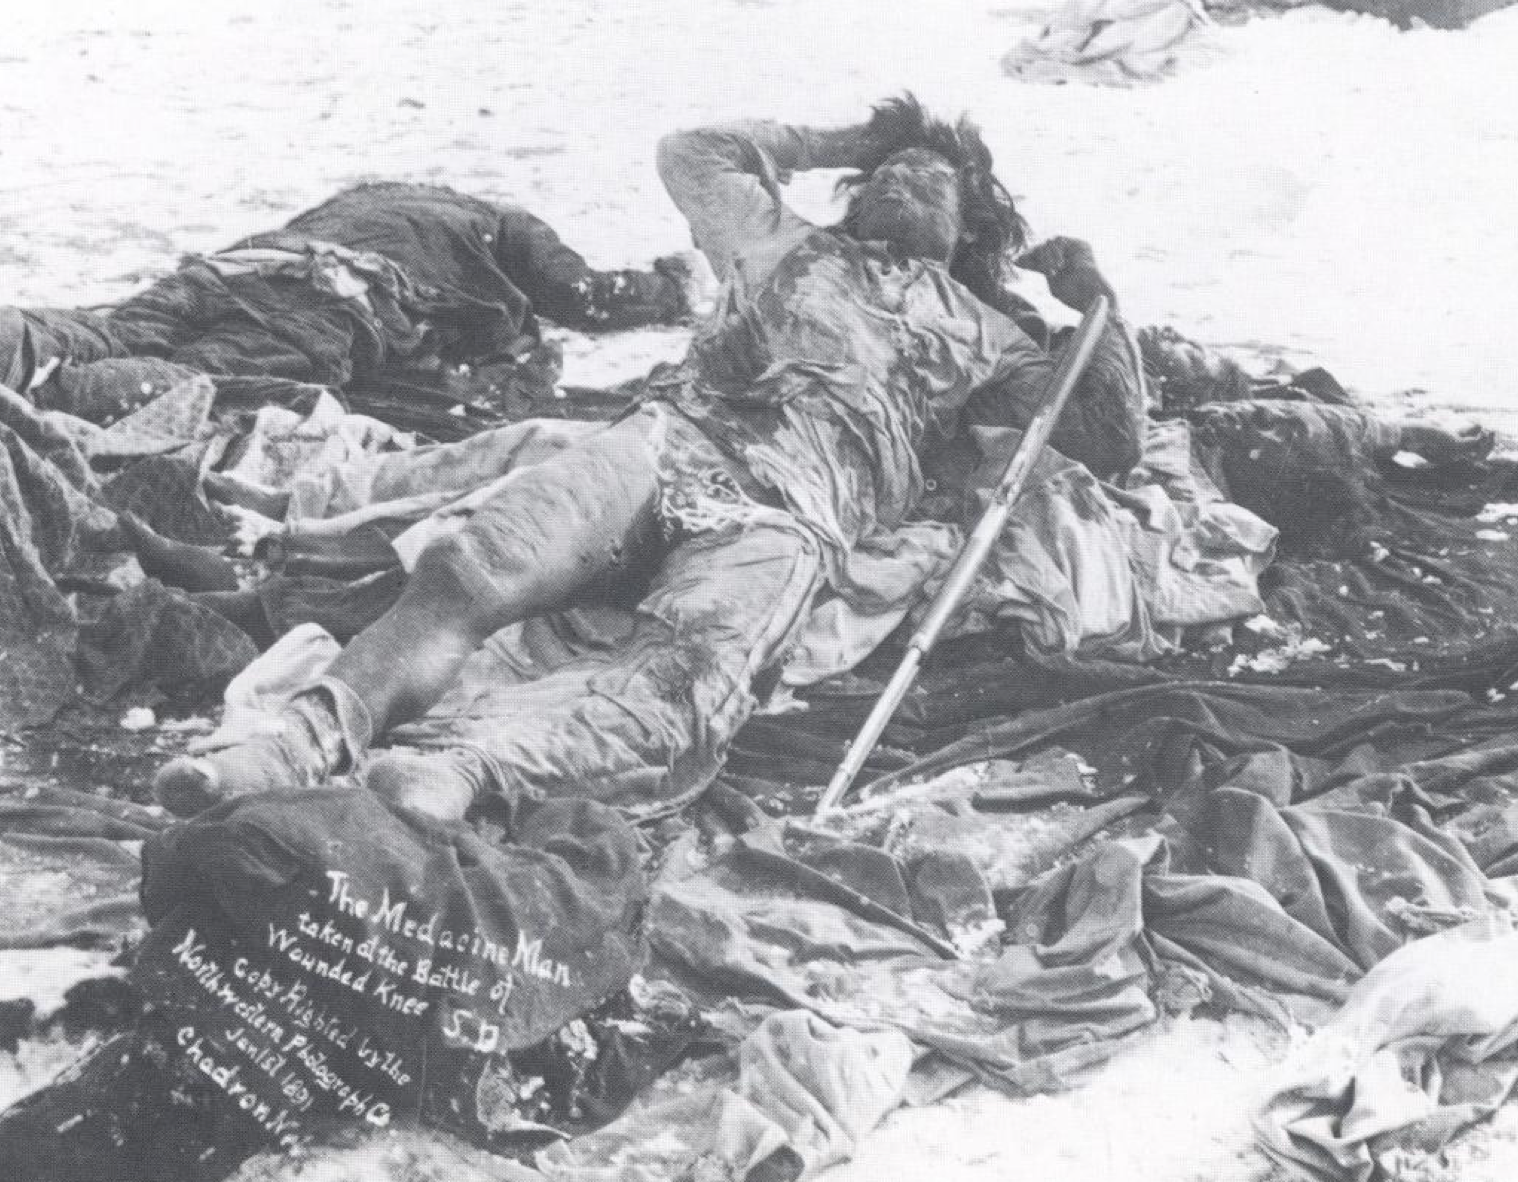 Medicine Man—killed at Wounded Knee—photo Wikipedia